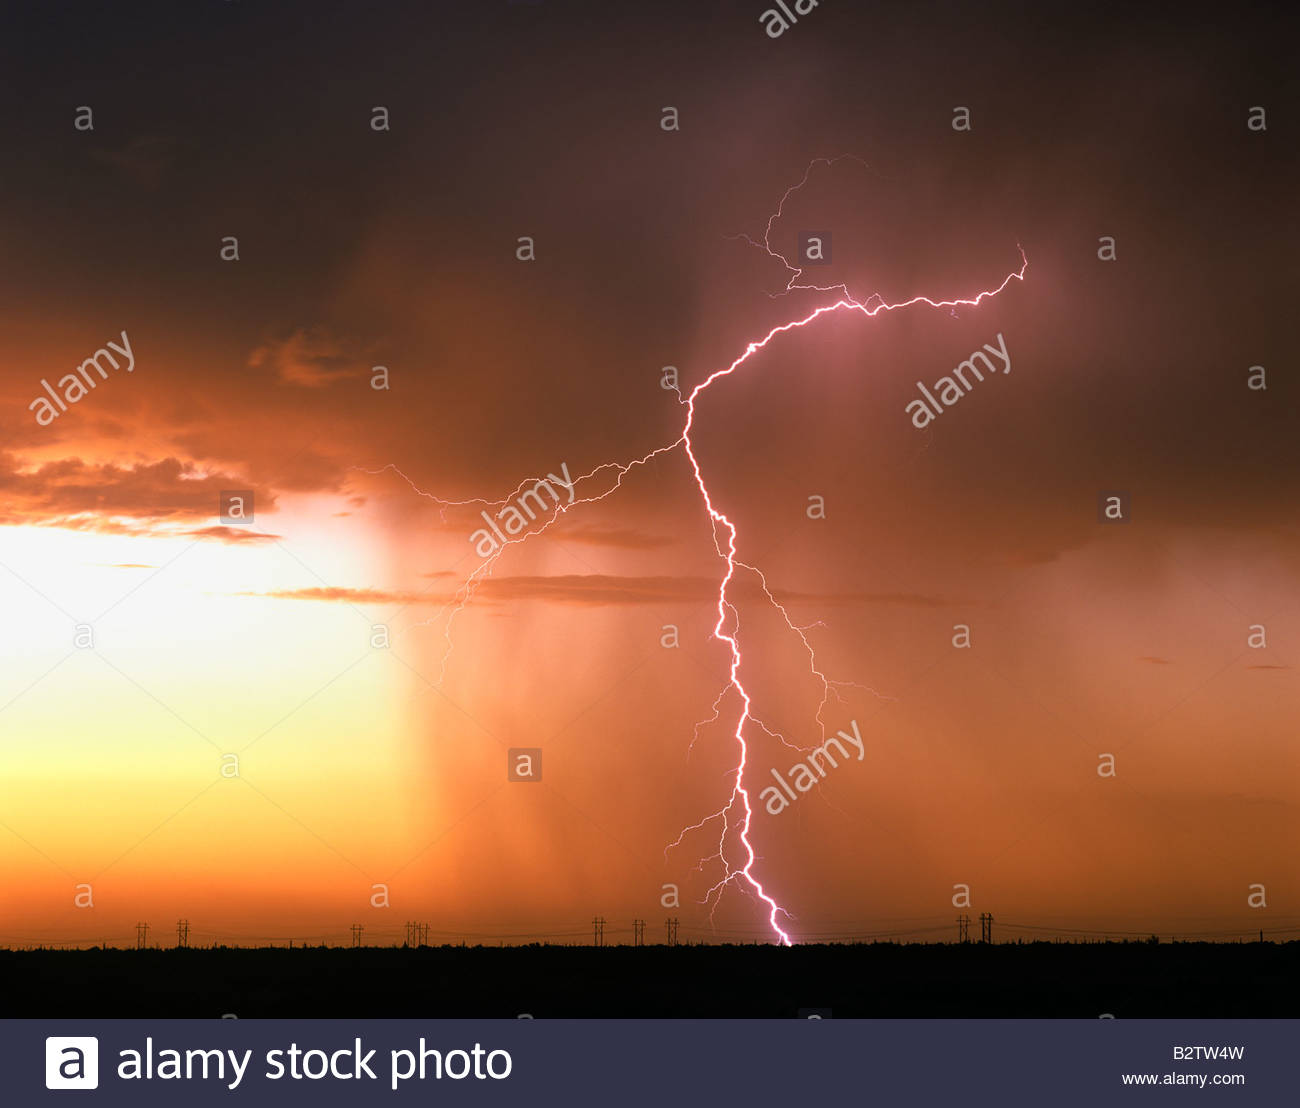 Thunderbolt at sunset with rain North East of Marana Arizona a row of power transmission lines down bellow - Stock Image